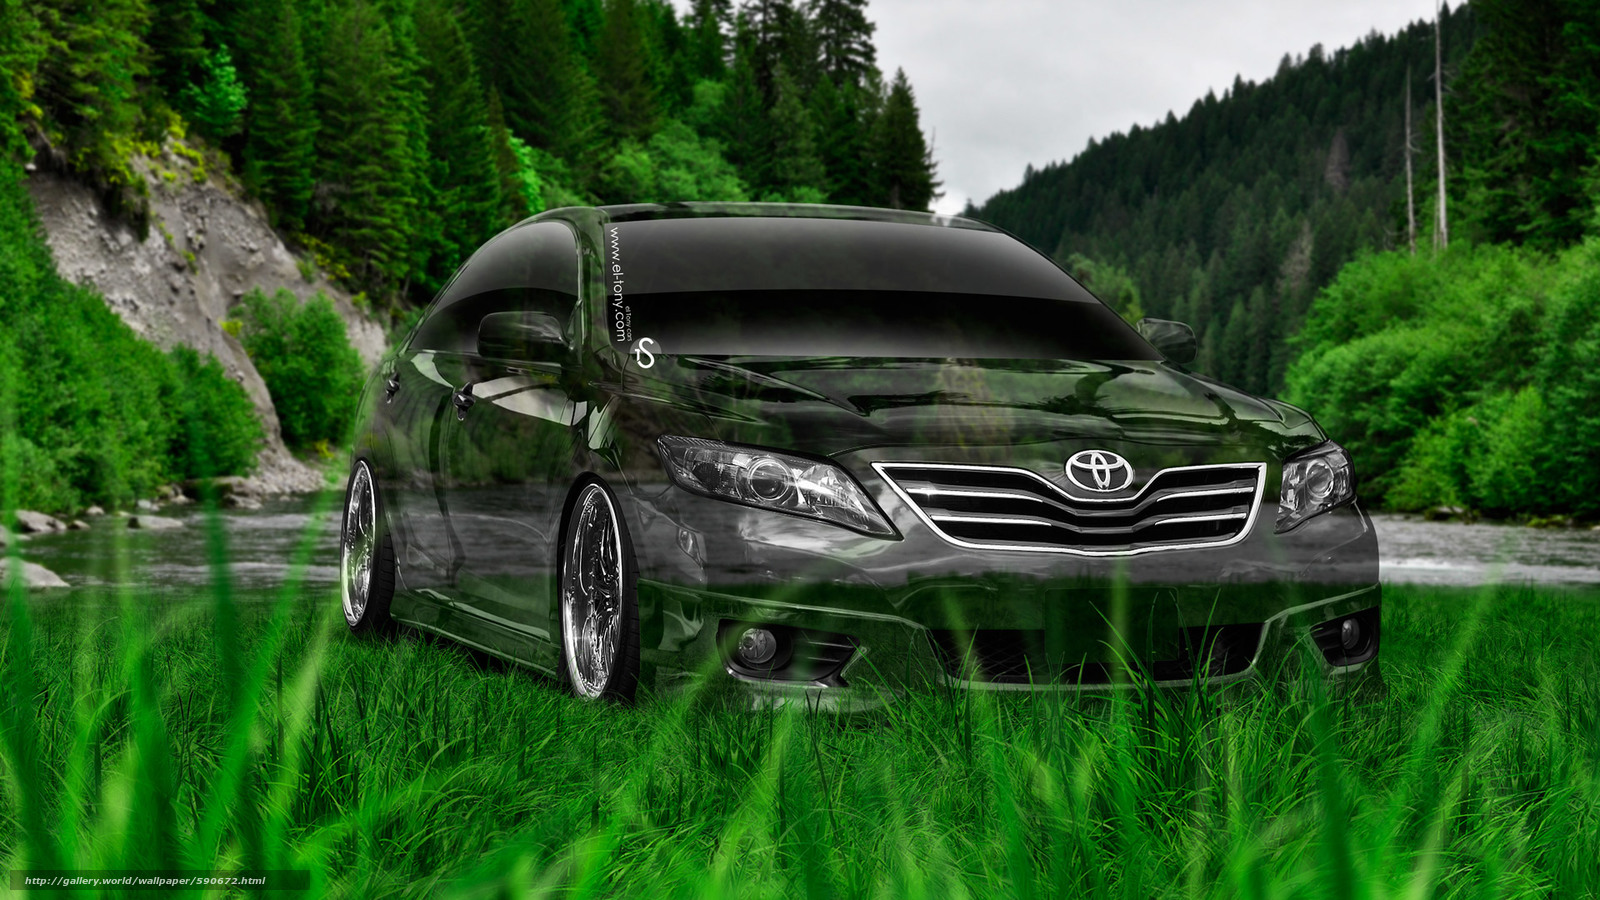 Download wallpaper Tony Kokhan,  Toyota,  Camry,  Crystal free desktop wallpaper in the resolution 1920x1080 — picture №590672